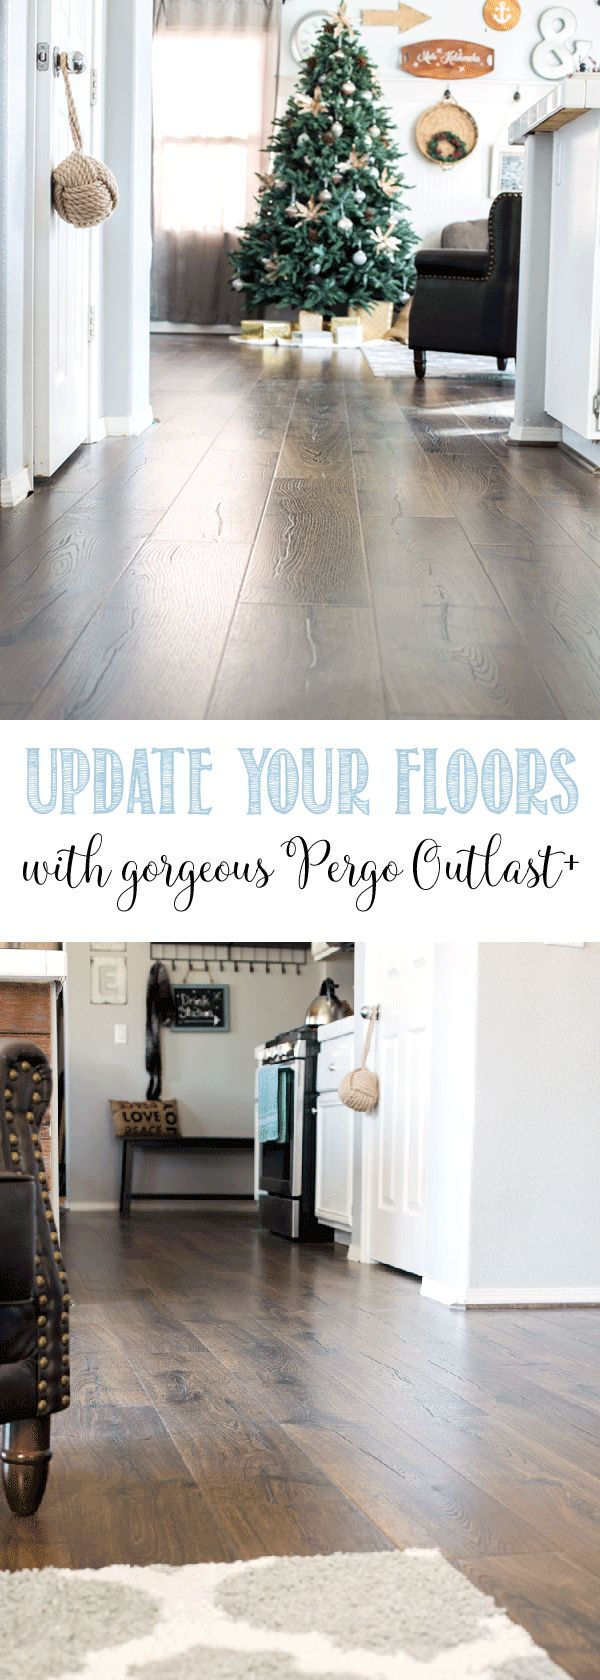 Update your floors with Pergo Outlast+ in Vintage Tobacco Oak which is 24-hour water resistant laminate perfect for kids and pets @genuinepergo #sponsored